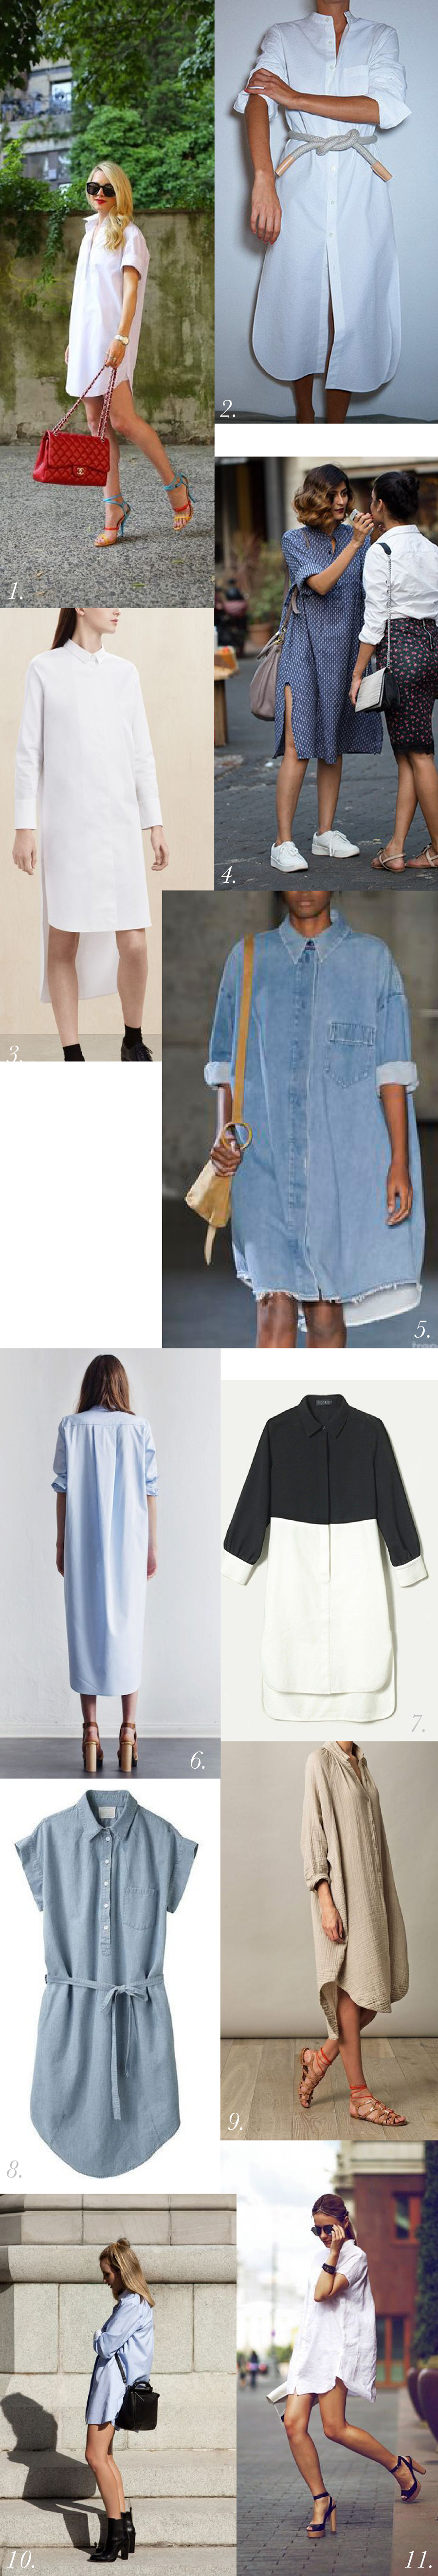 Shirtdress & Oversized Button Down Shirt // Inspiration & styling // Kalle Shirtdress pattern Sewalong // Closet Case Patterns